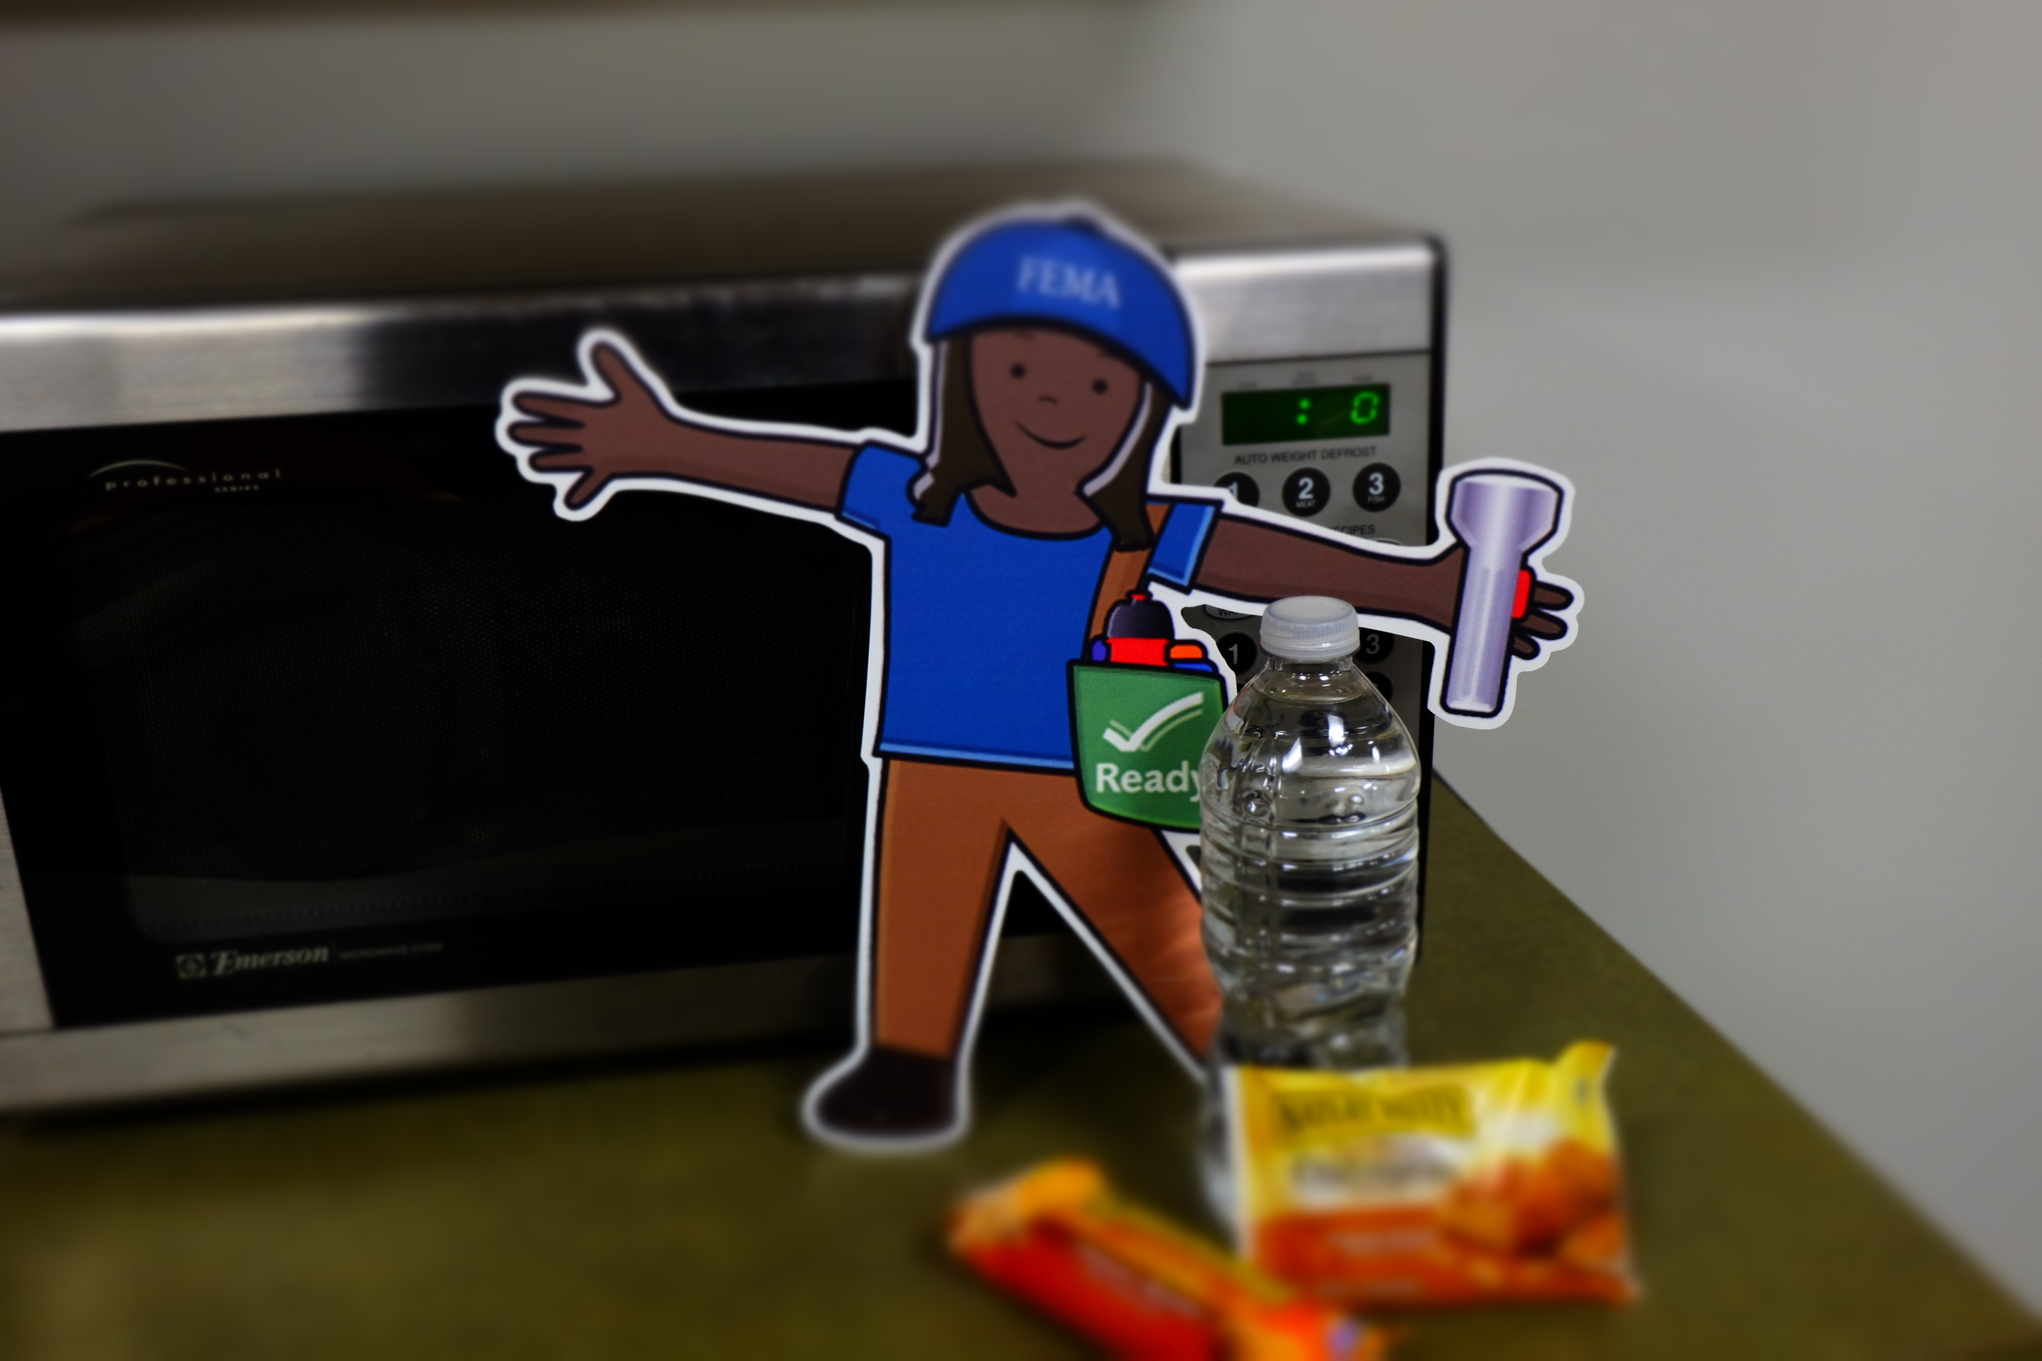 Washington, D.C., October 30, 2013 -- Flat Stella shows some other items to include in your emergency supply kit. Water and snacks should be included in your kit.